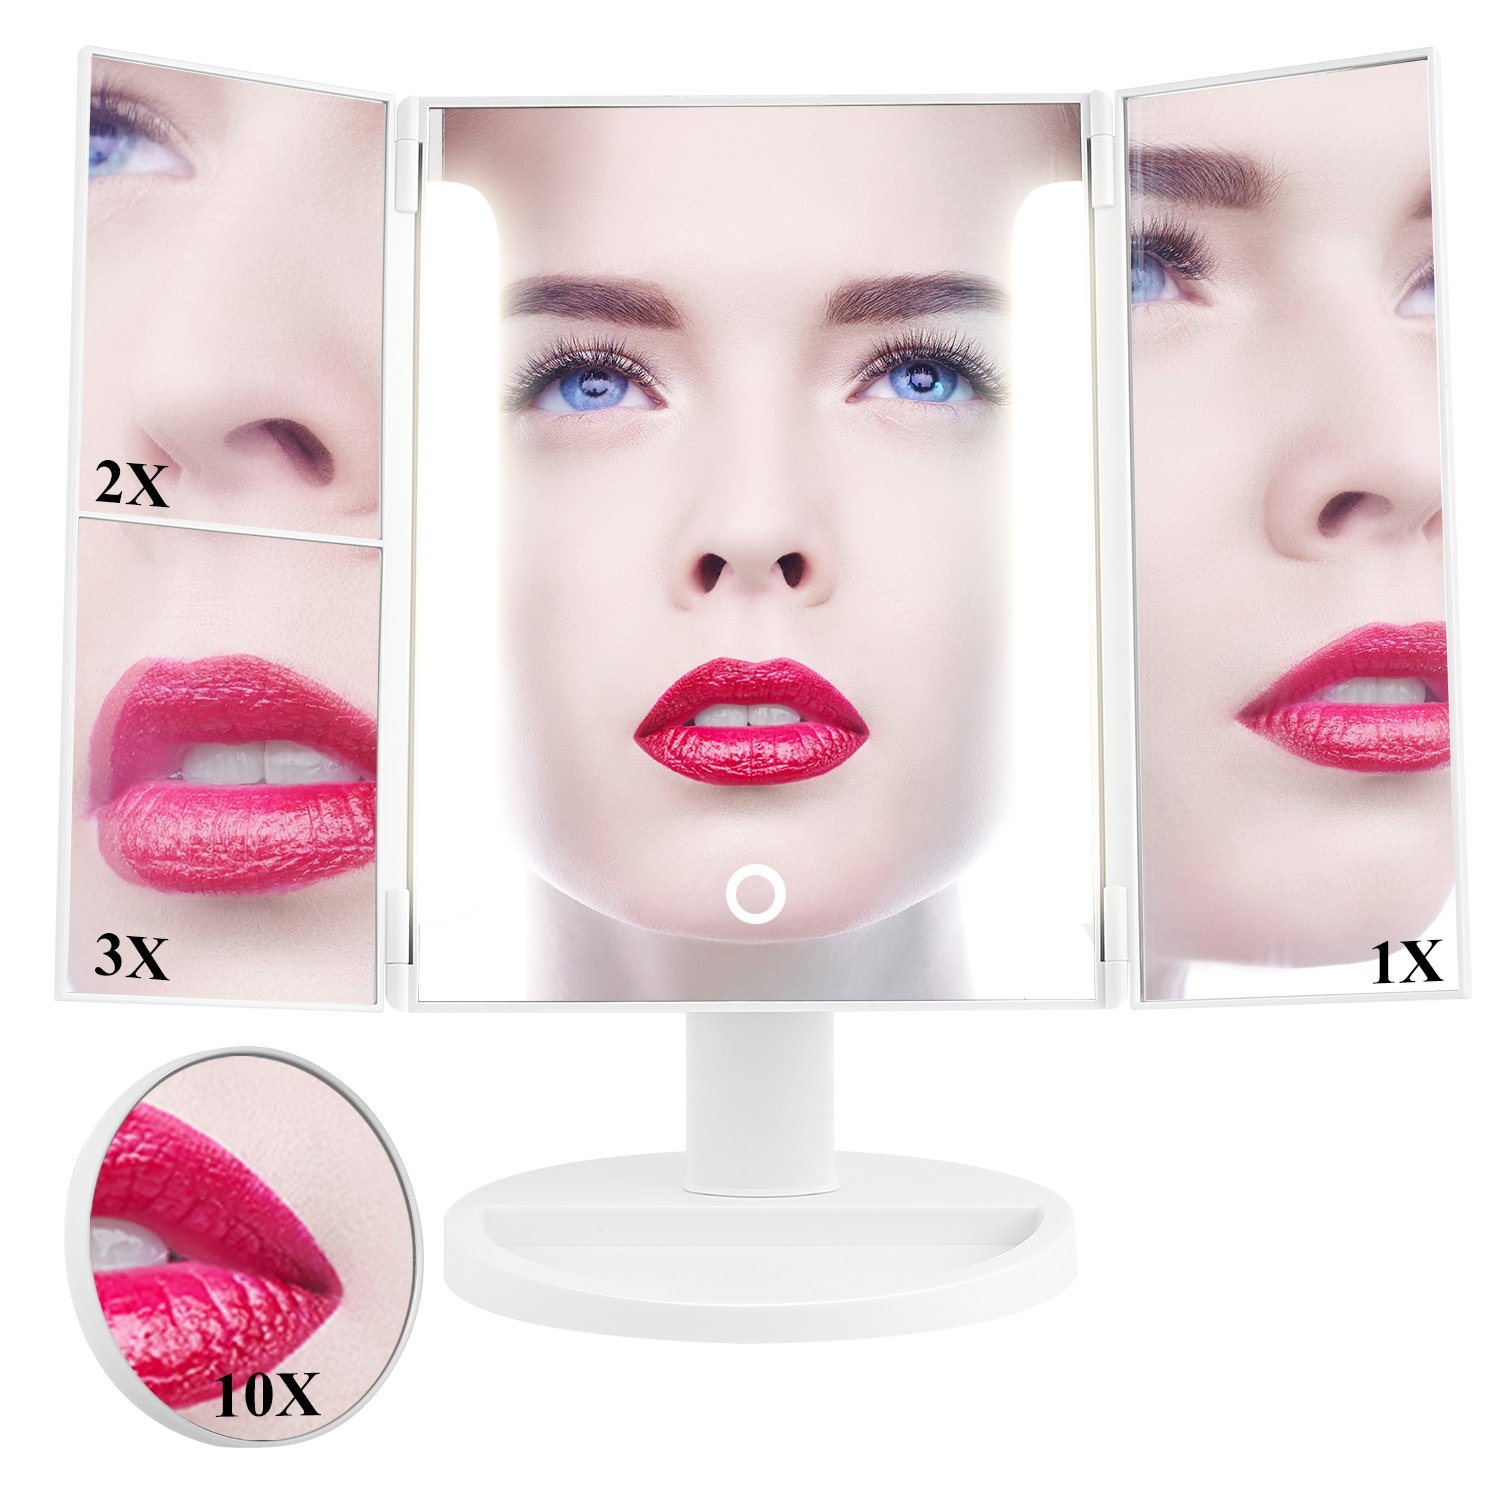 HAIRBY Vanity Mirror with Lights, Lighted Cosmetic Makeup Mirror with 36 LED Lights, Touch Screen, 1X/2X/3X/10X Magnification,180° Adjustable Rotation USB Charging / 4 PCS AA Batteries